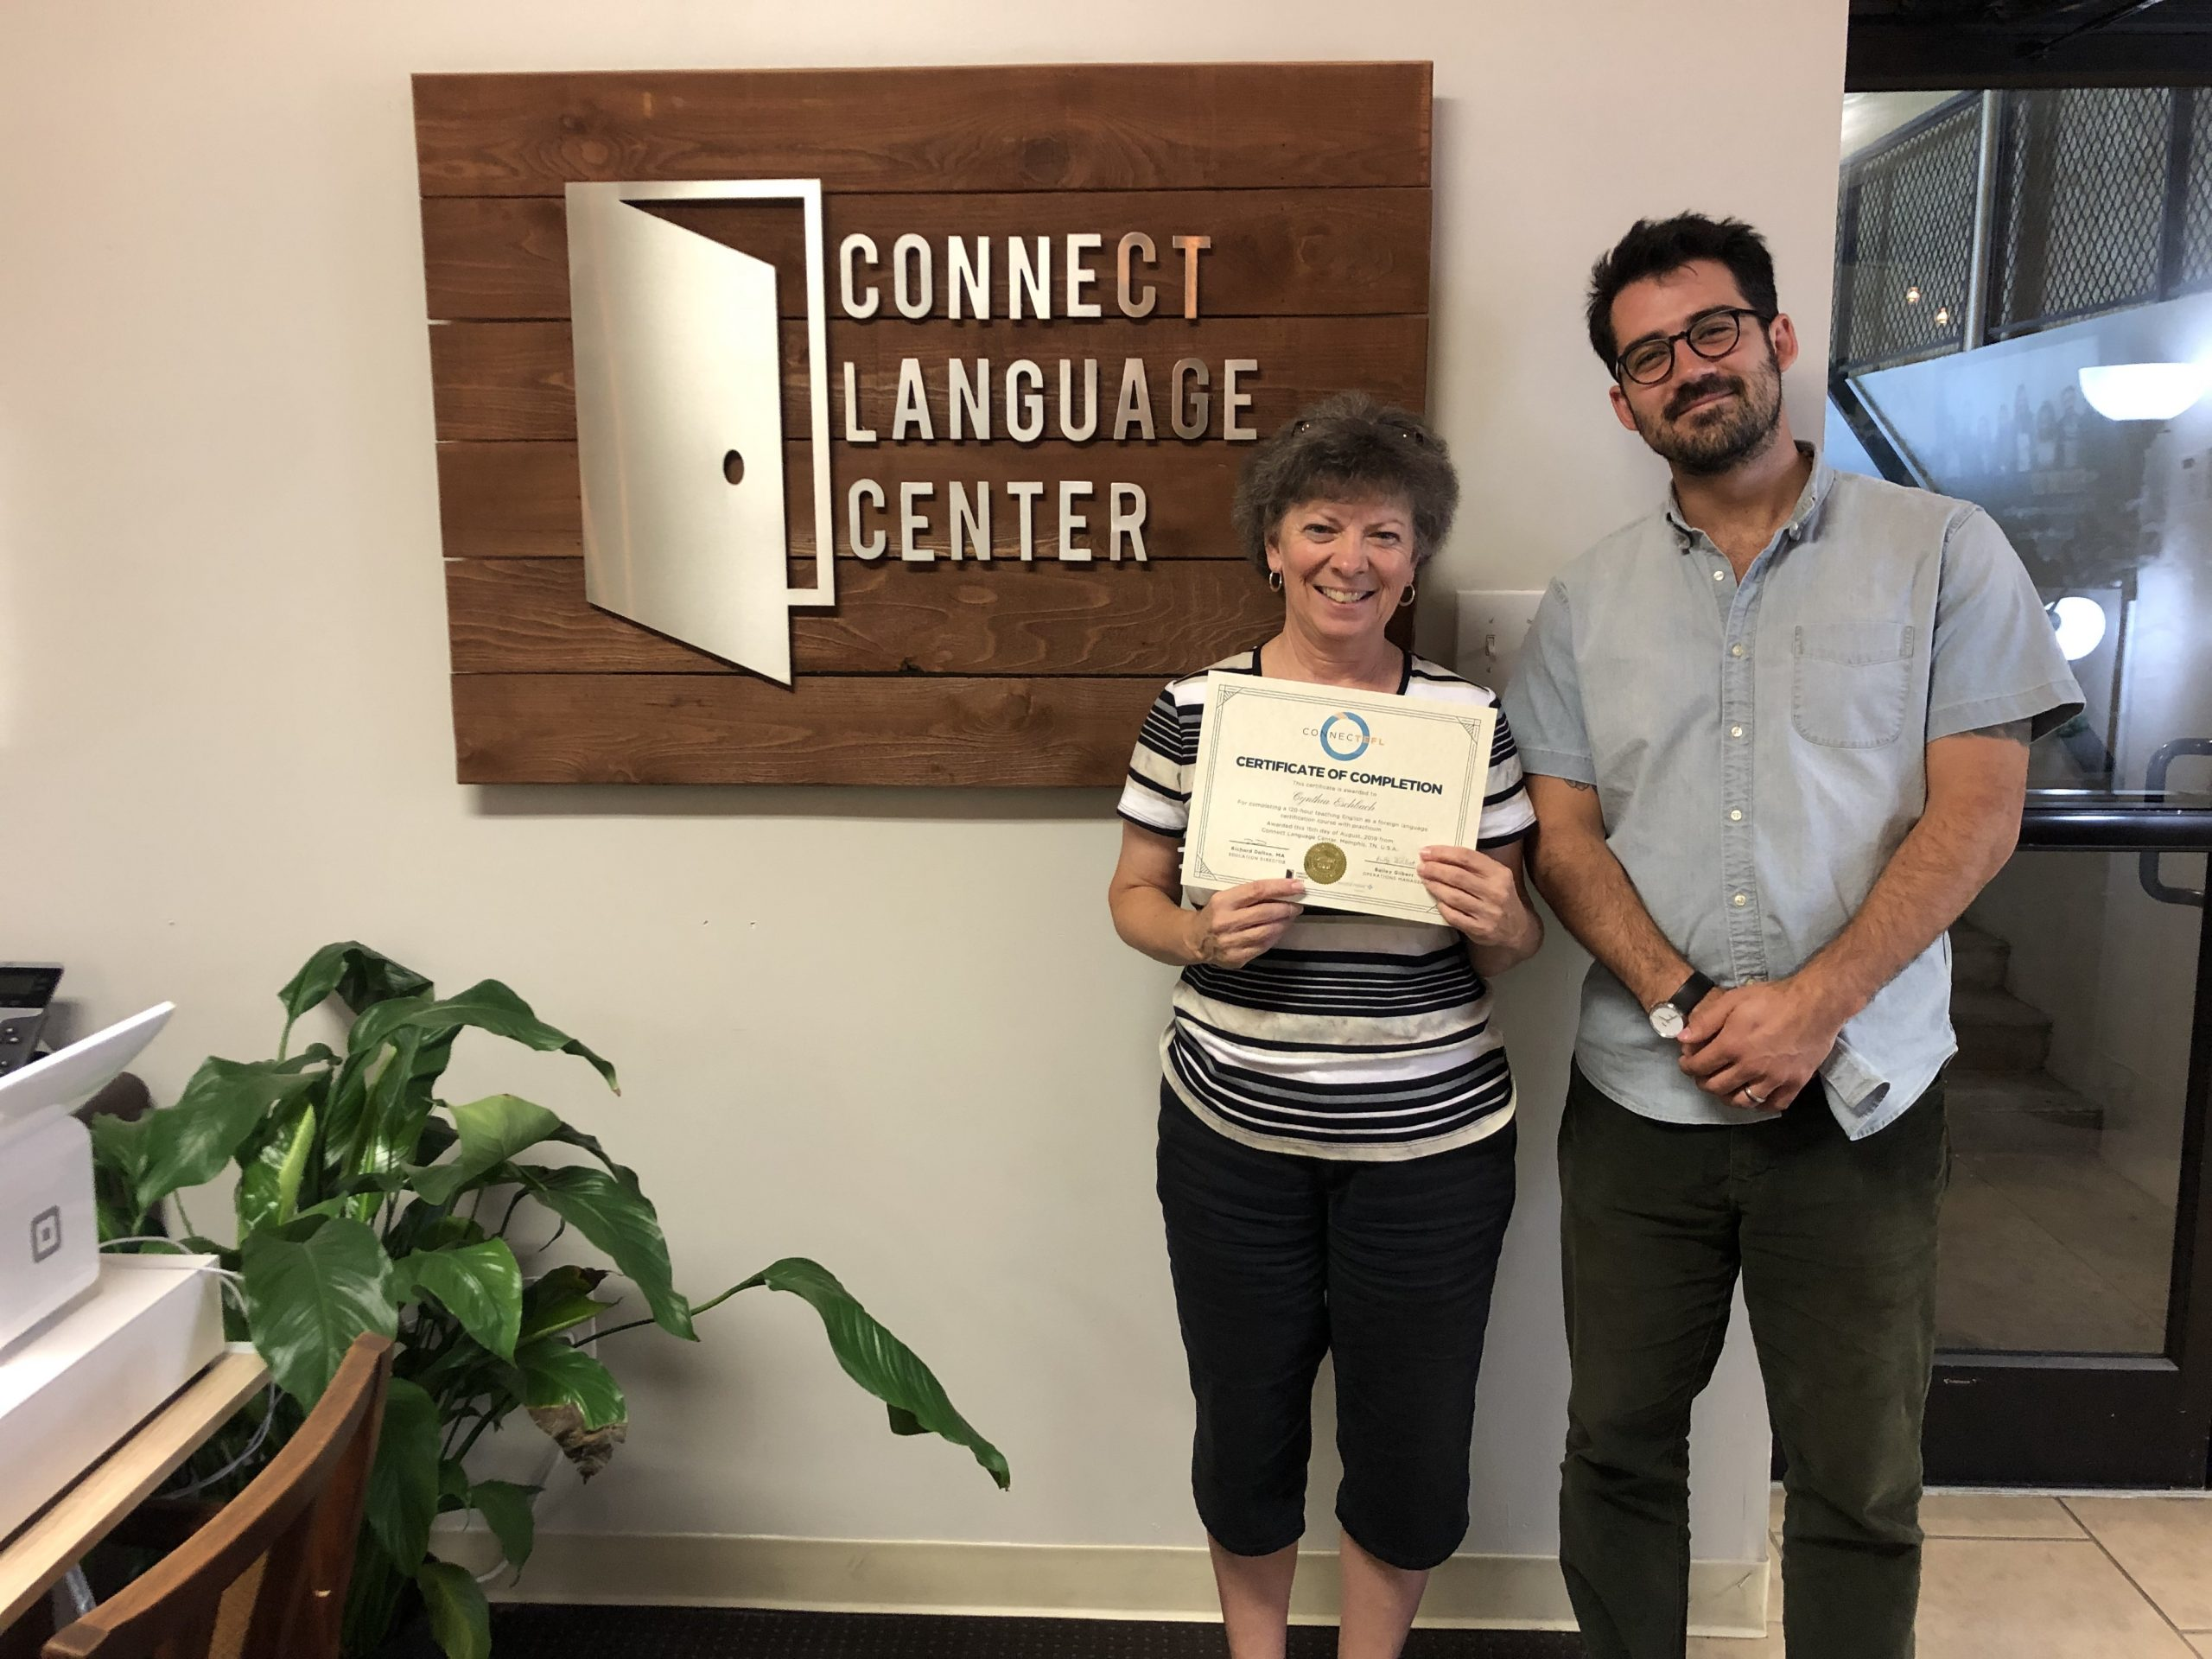 Student receives ConnecTEFL certificate.